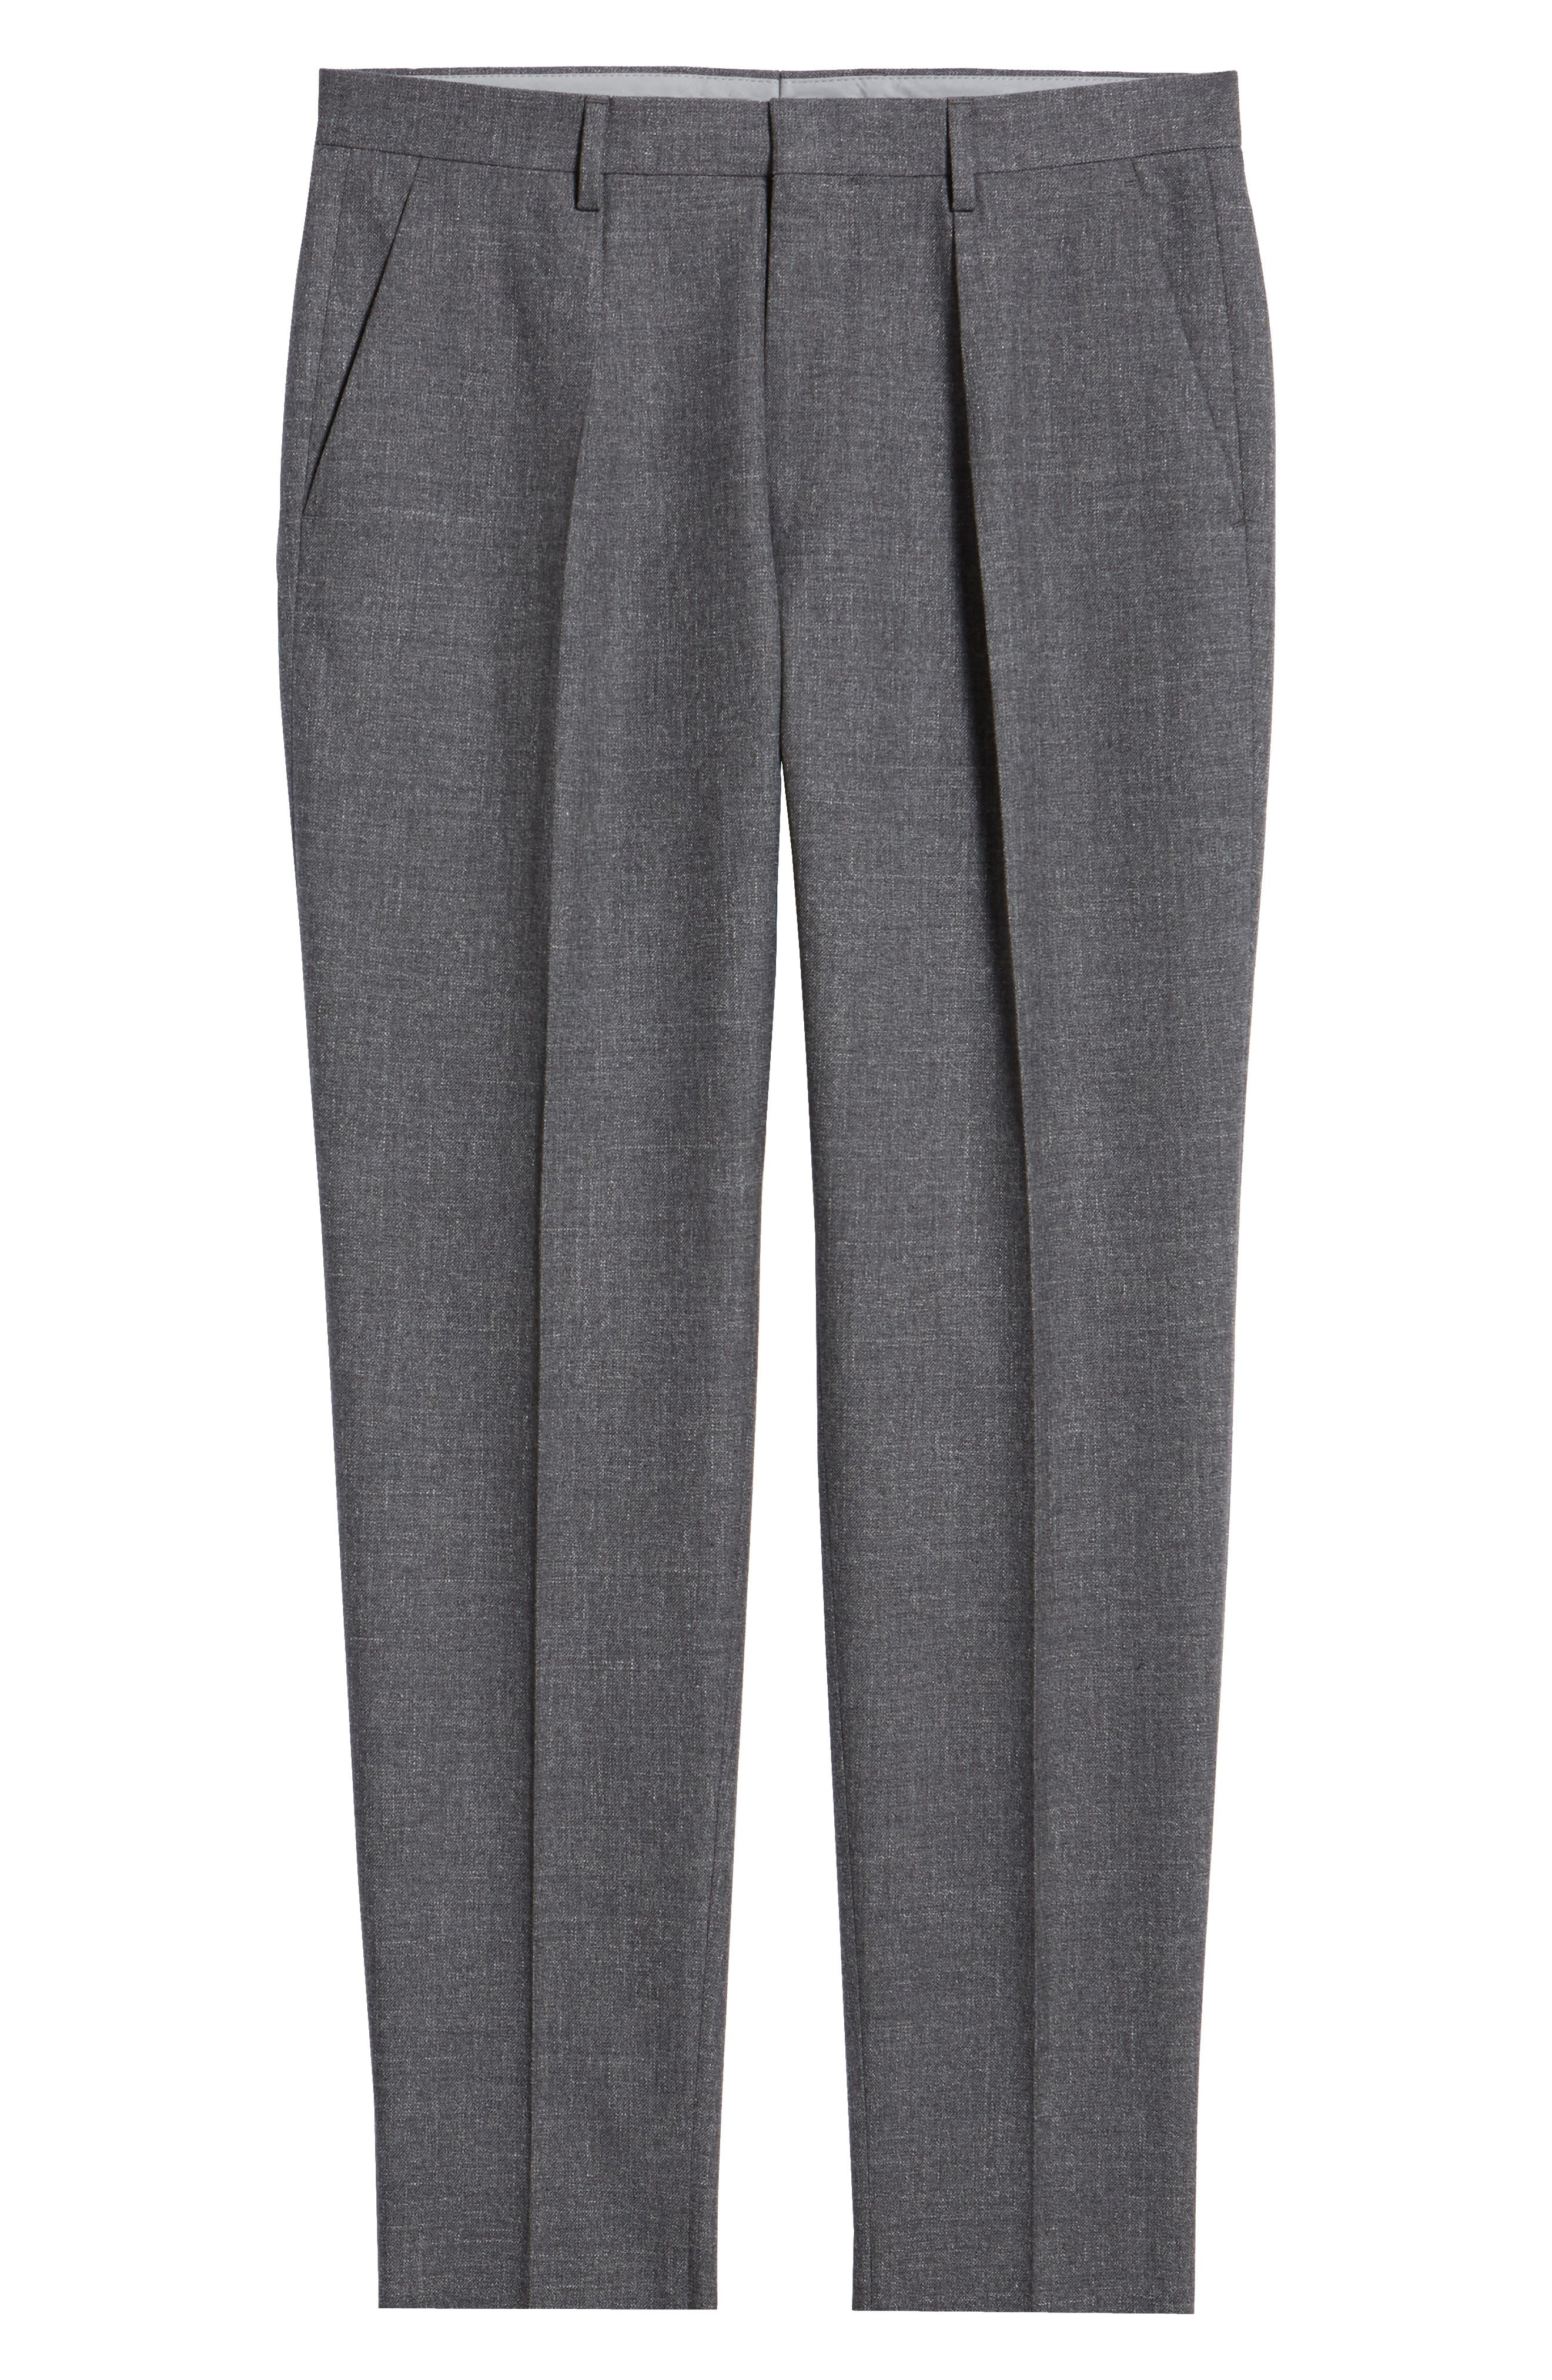 Ole Pleated Solid Wool & Cotton Trousers,                             Alternate thumbnail 6, color,                             MEDIUM GREY